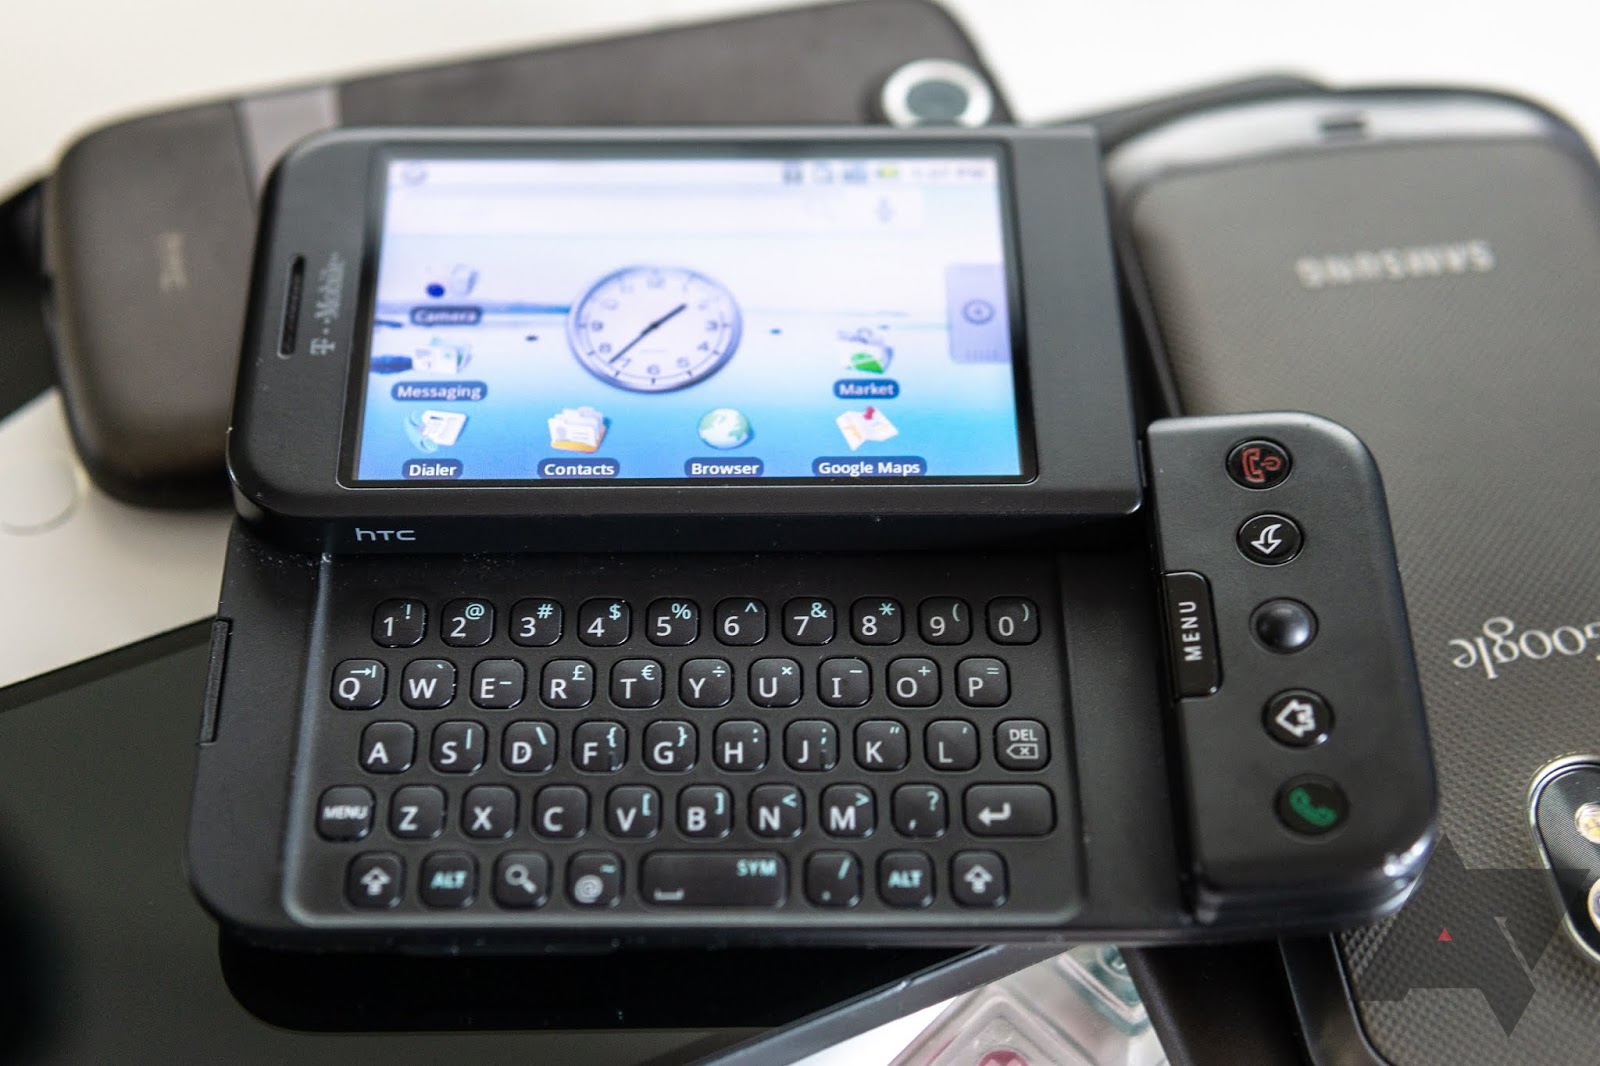 HTC Dream fue el primer dispositivo con Android